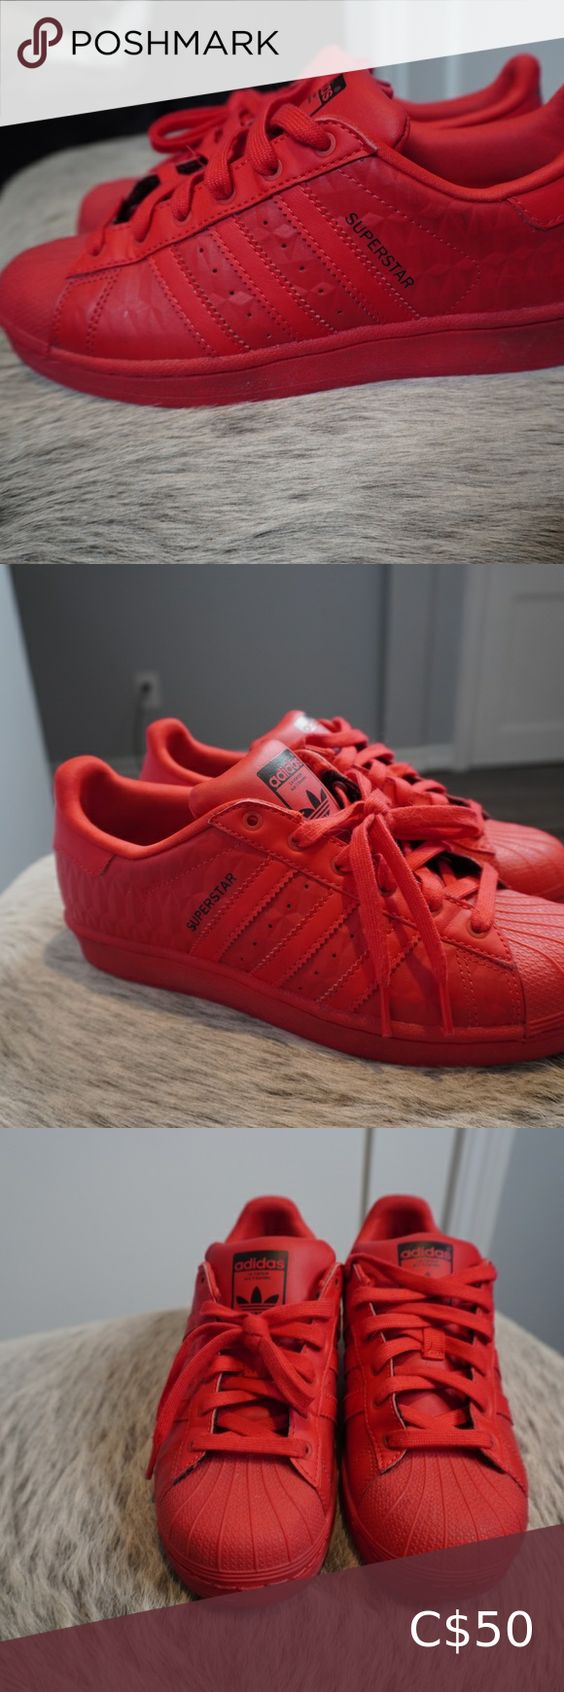 ADIDAS SHELL TOE RED in 2020 | Adidas